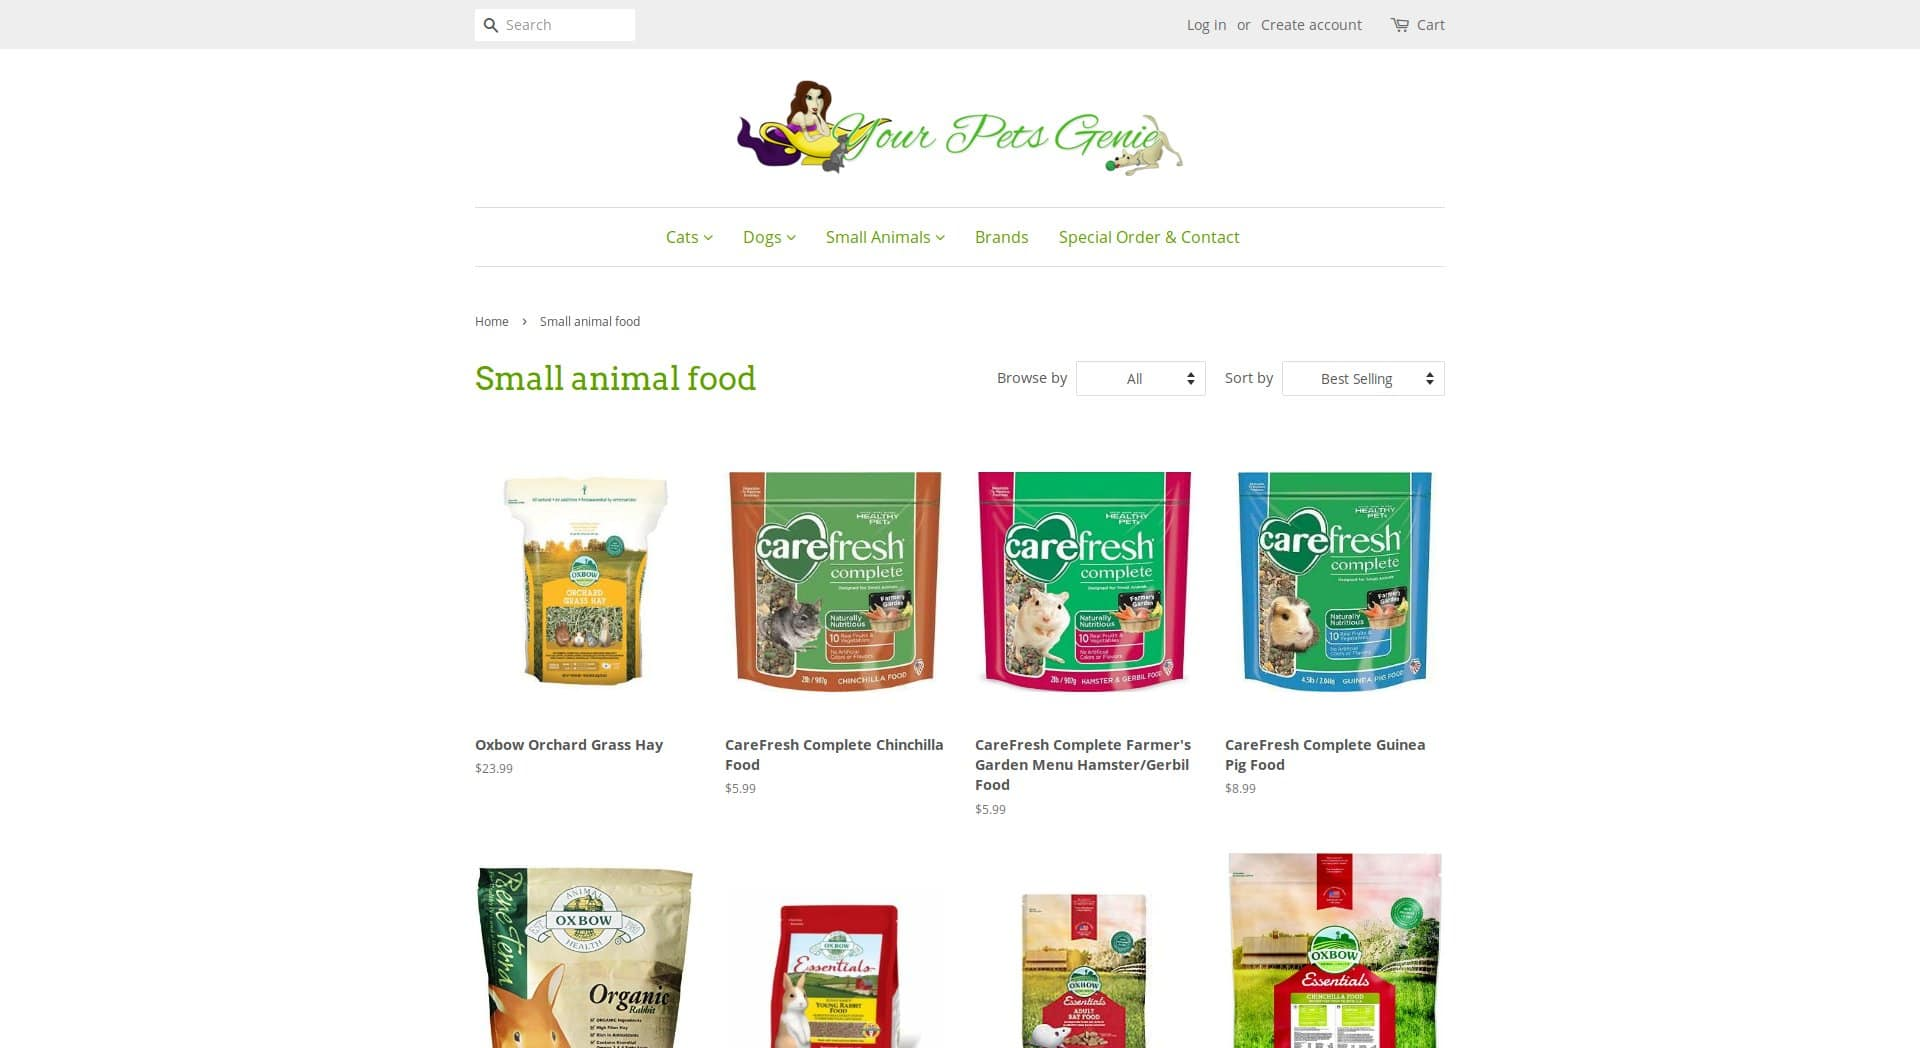 Website product selection